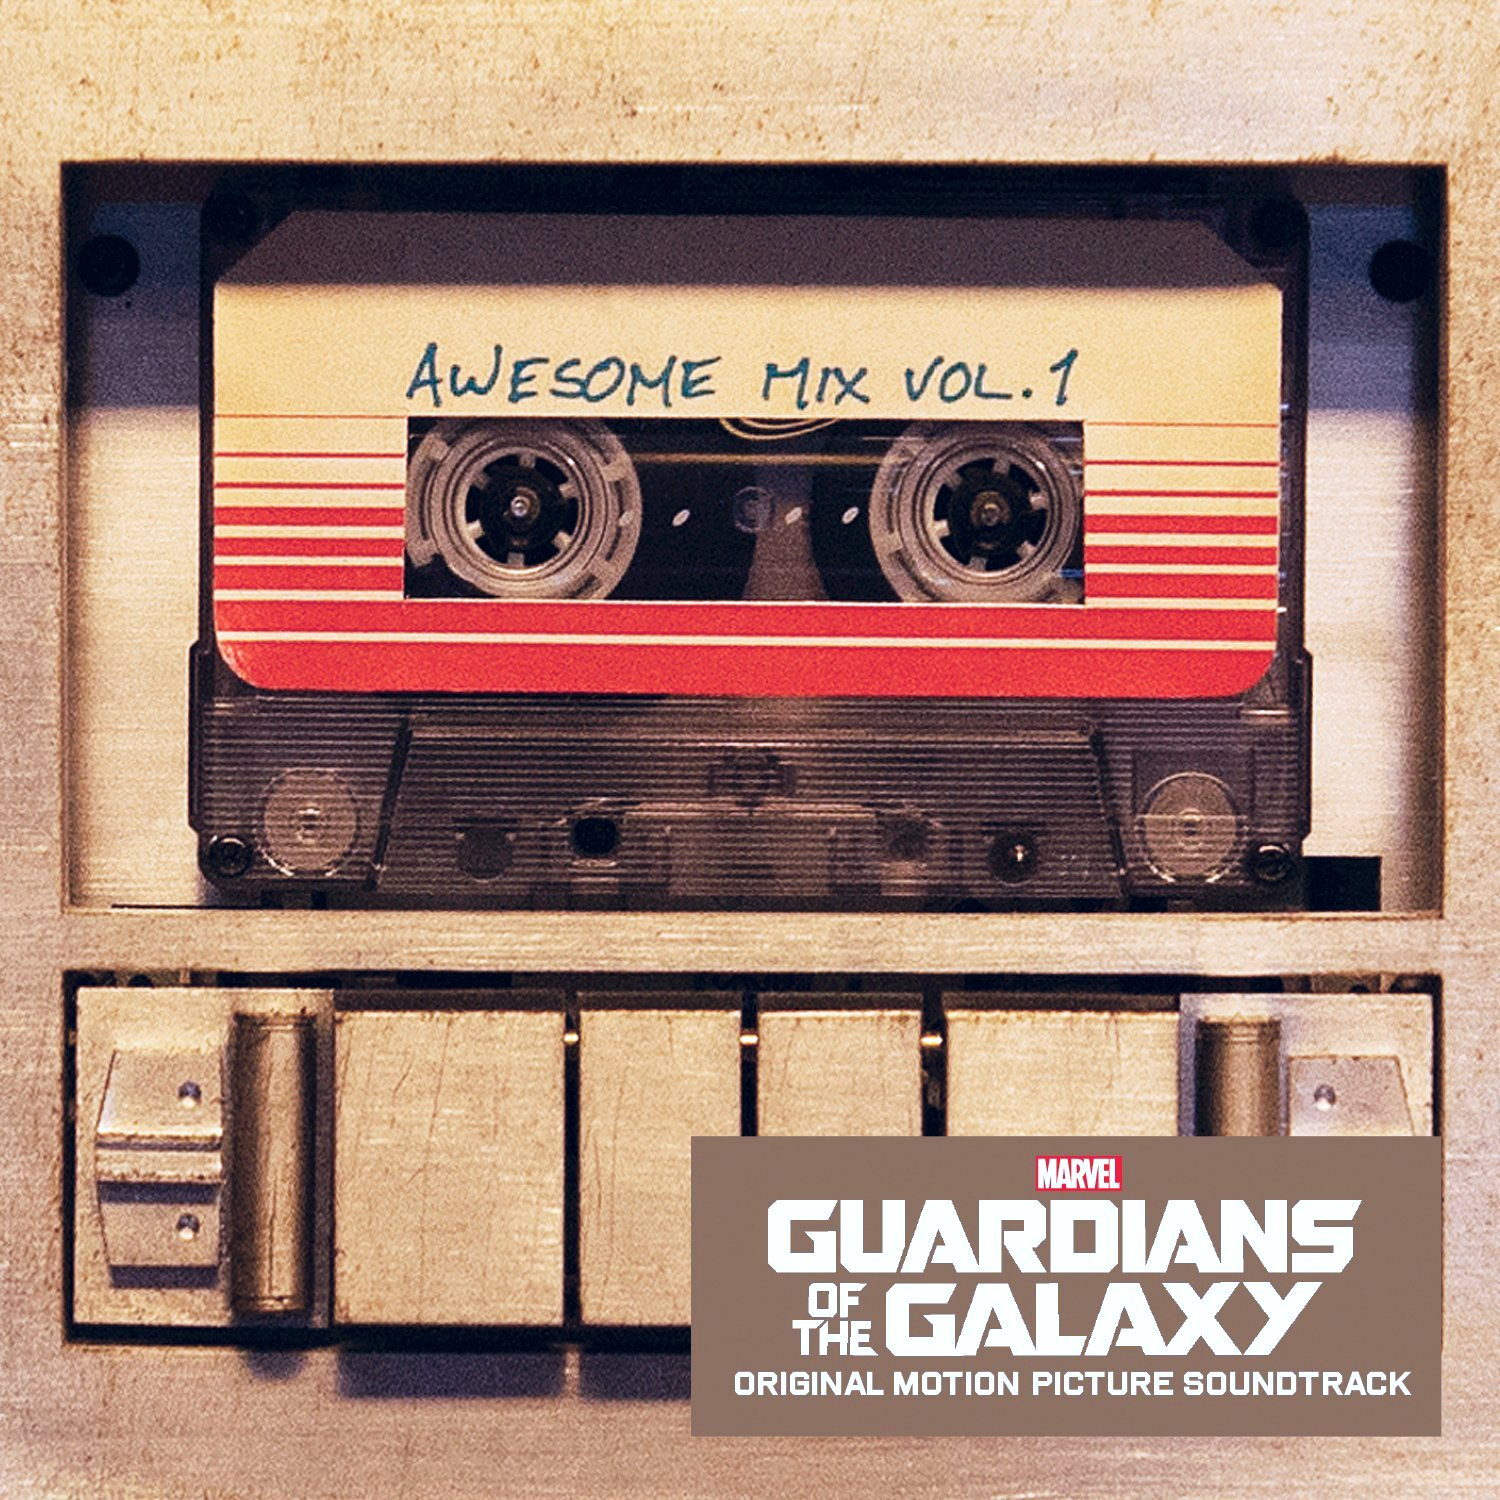 Guardians of the Galaxy: Awesome Mix Vol.1 by Hollywood